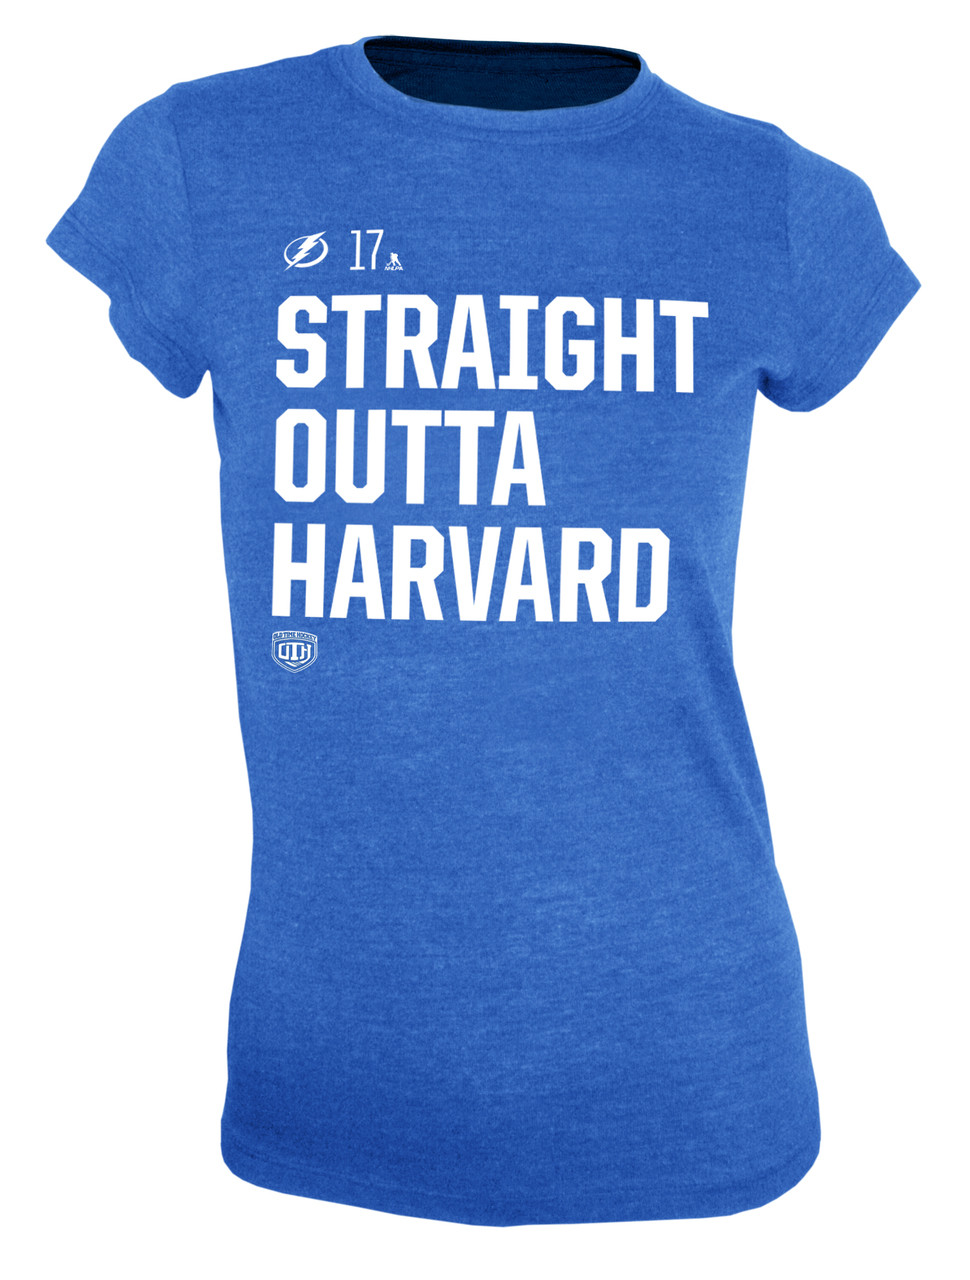 3f3b237a Women's Tampa Bay Lightning Straight Outta Harvard Social Inspired T-Shirt  - Tampa Bay Sports